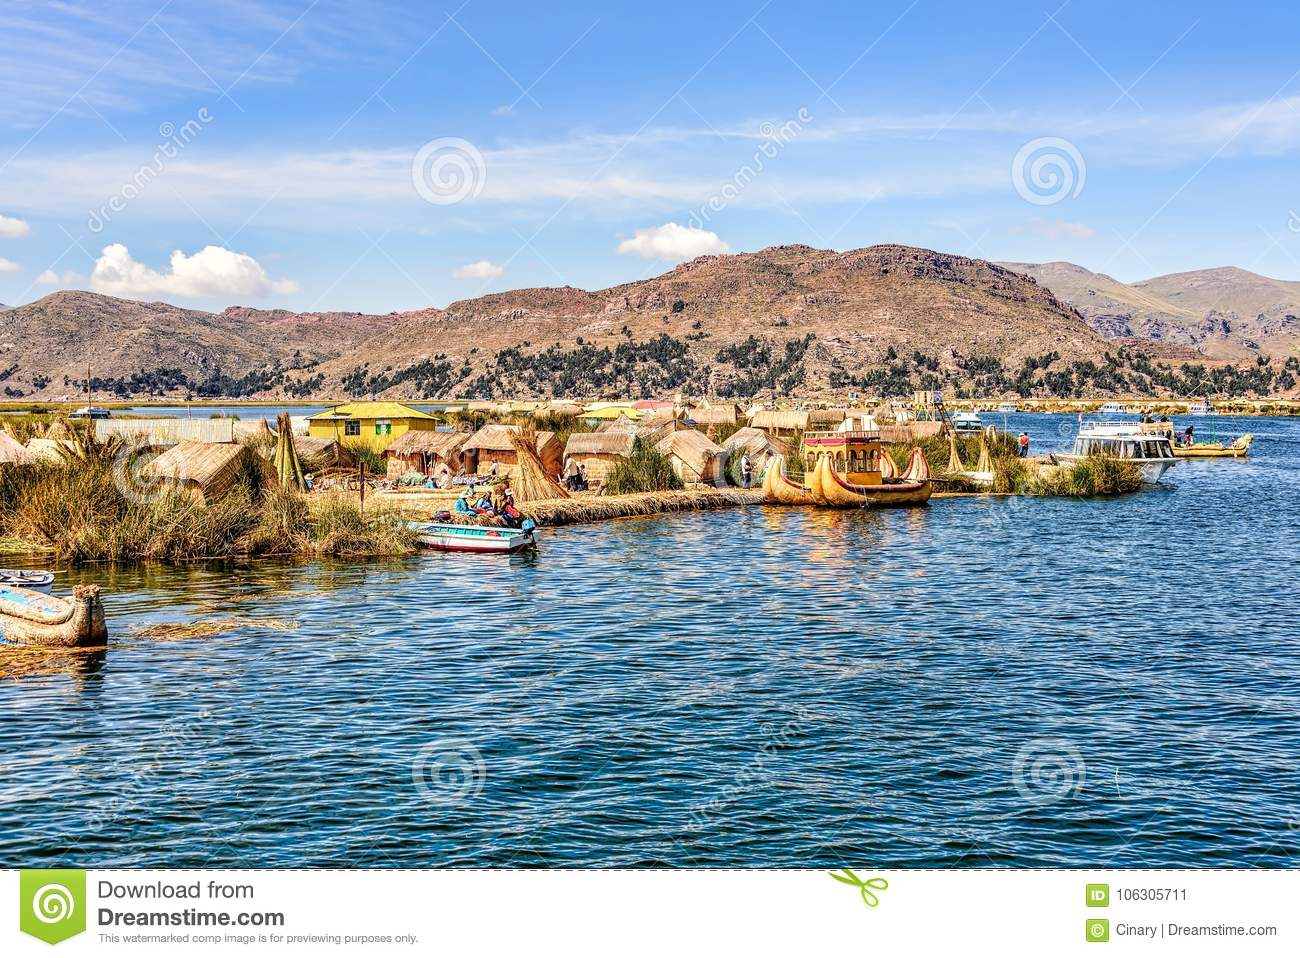 Floating islands made from reeds on Lake Titicaca under blue ski